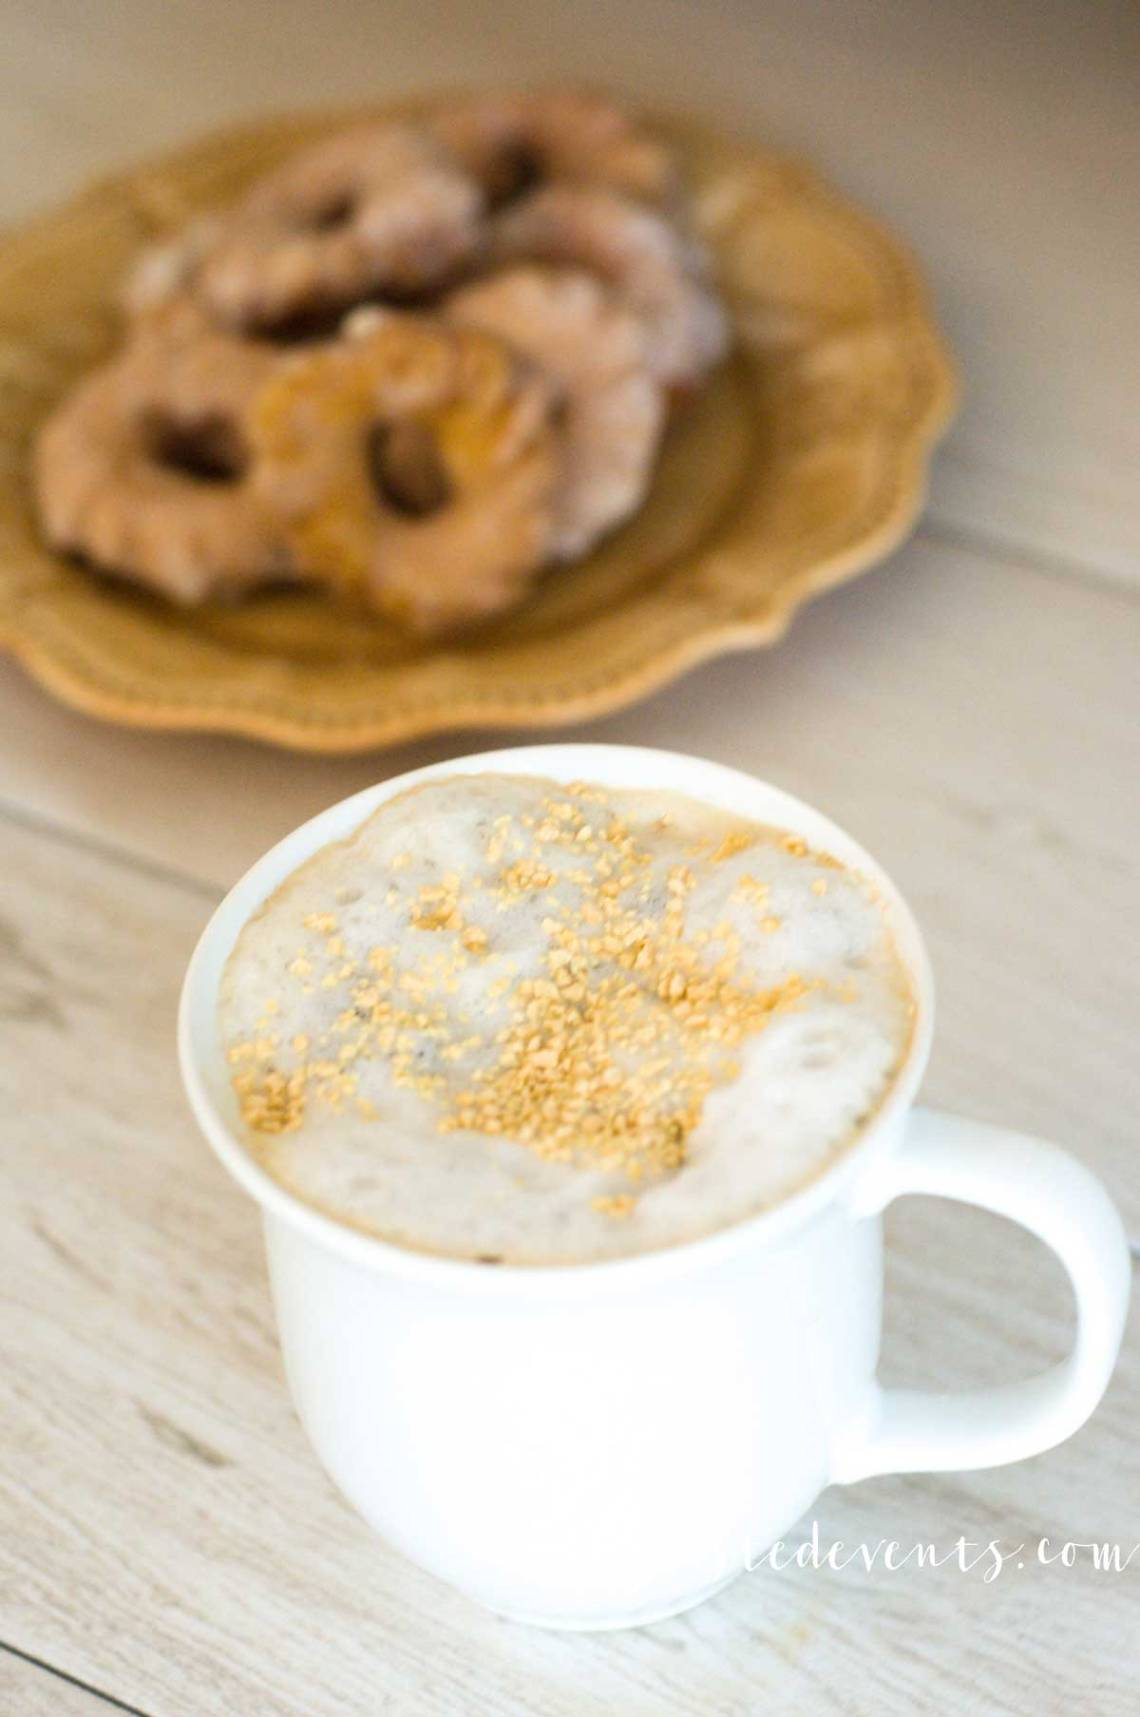 Coffee Drink Recipes for Fall - Fall flavor inspirations via Misty Nelson frostedMoms frostedevents.com @frostedevents